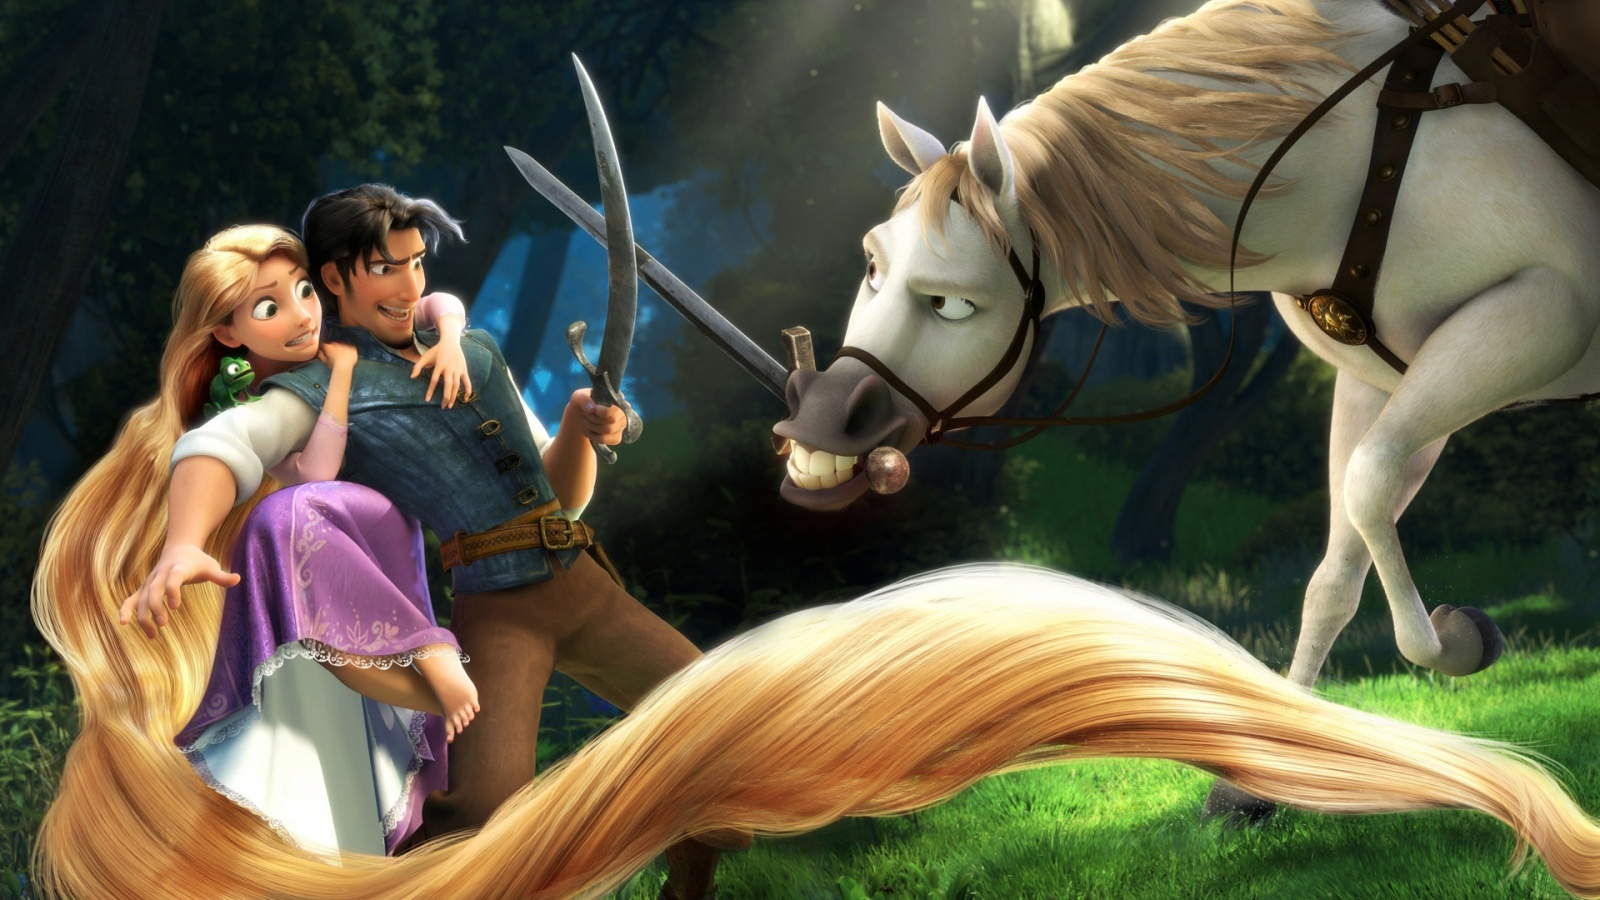 Rapunzel Flynn In Tangled Wallpapers